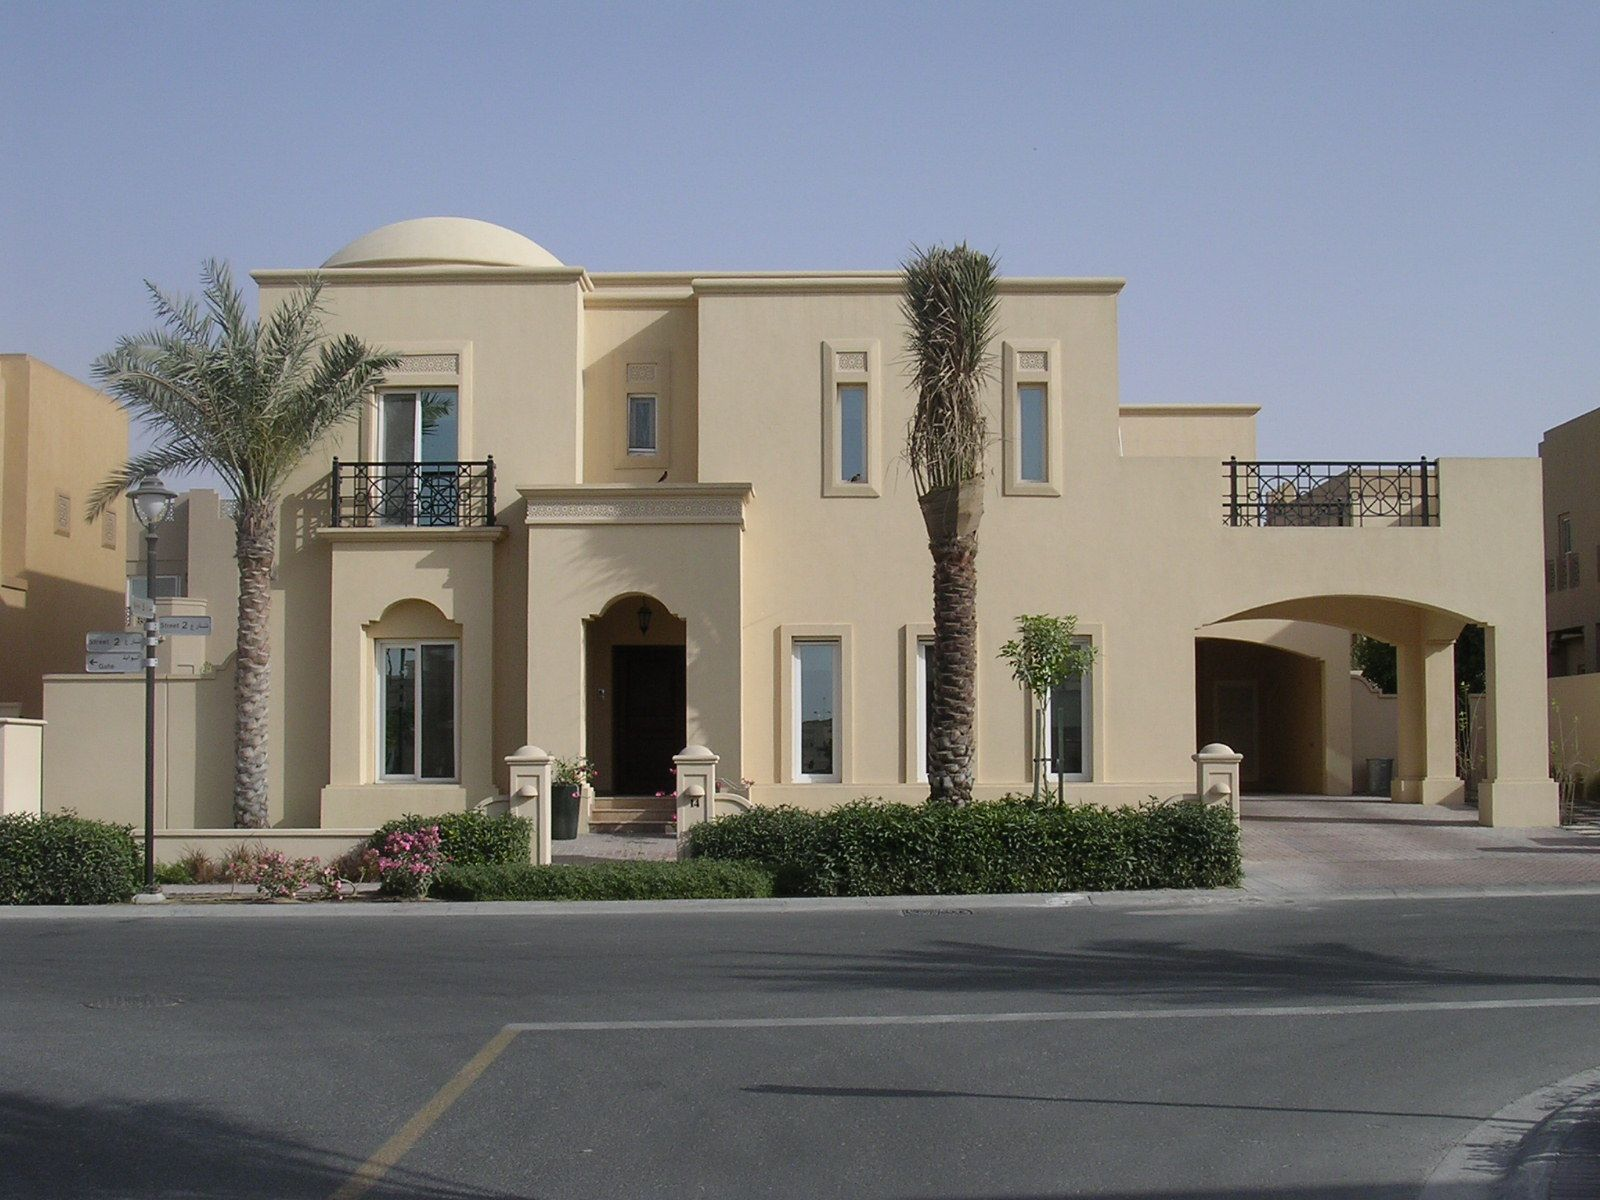 Emirati dibai villa modern contemporary arabic for Modern house villa